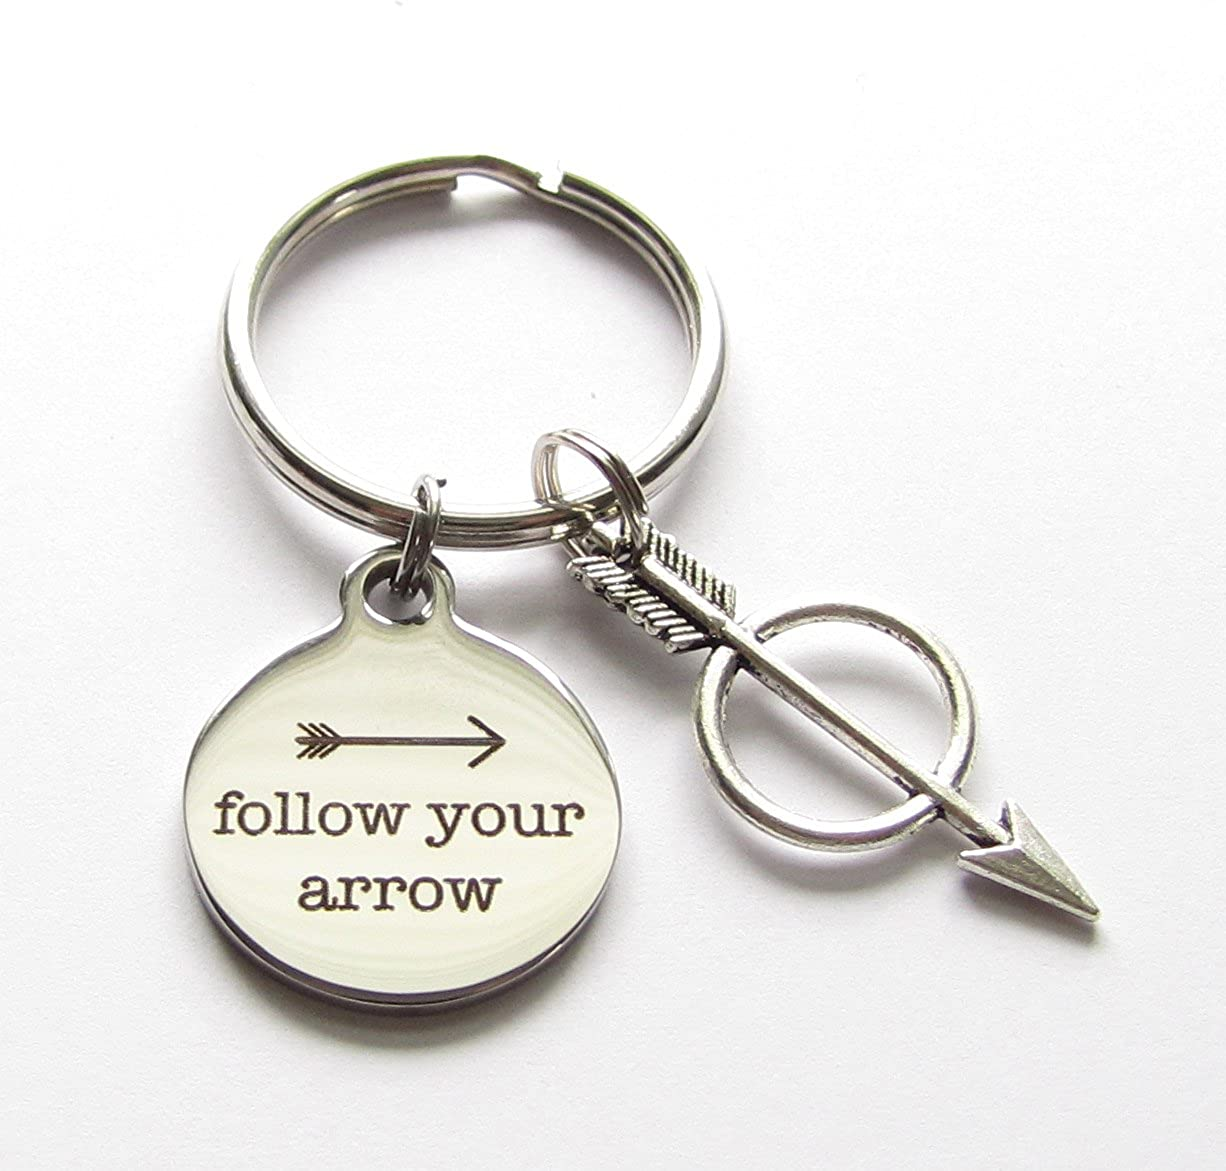 Amazon.com: Follow Your Arrow Mensaje Encanto y Bullseye ...